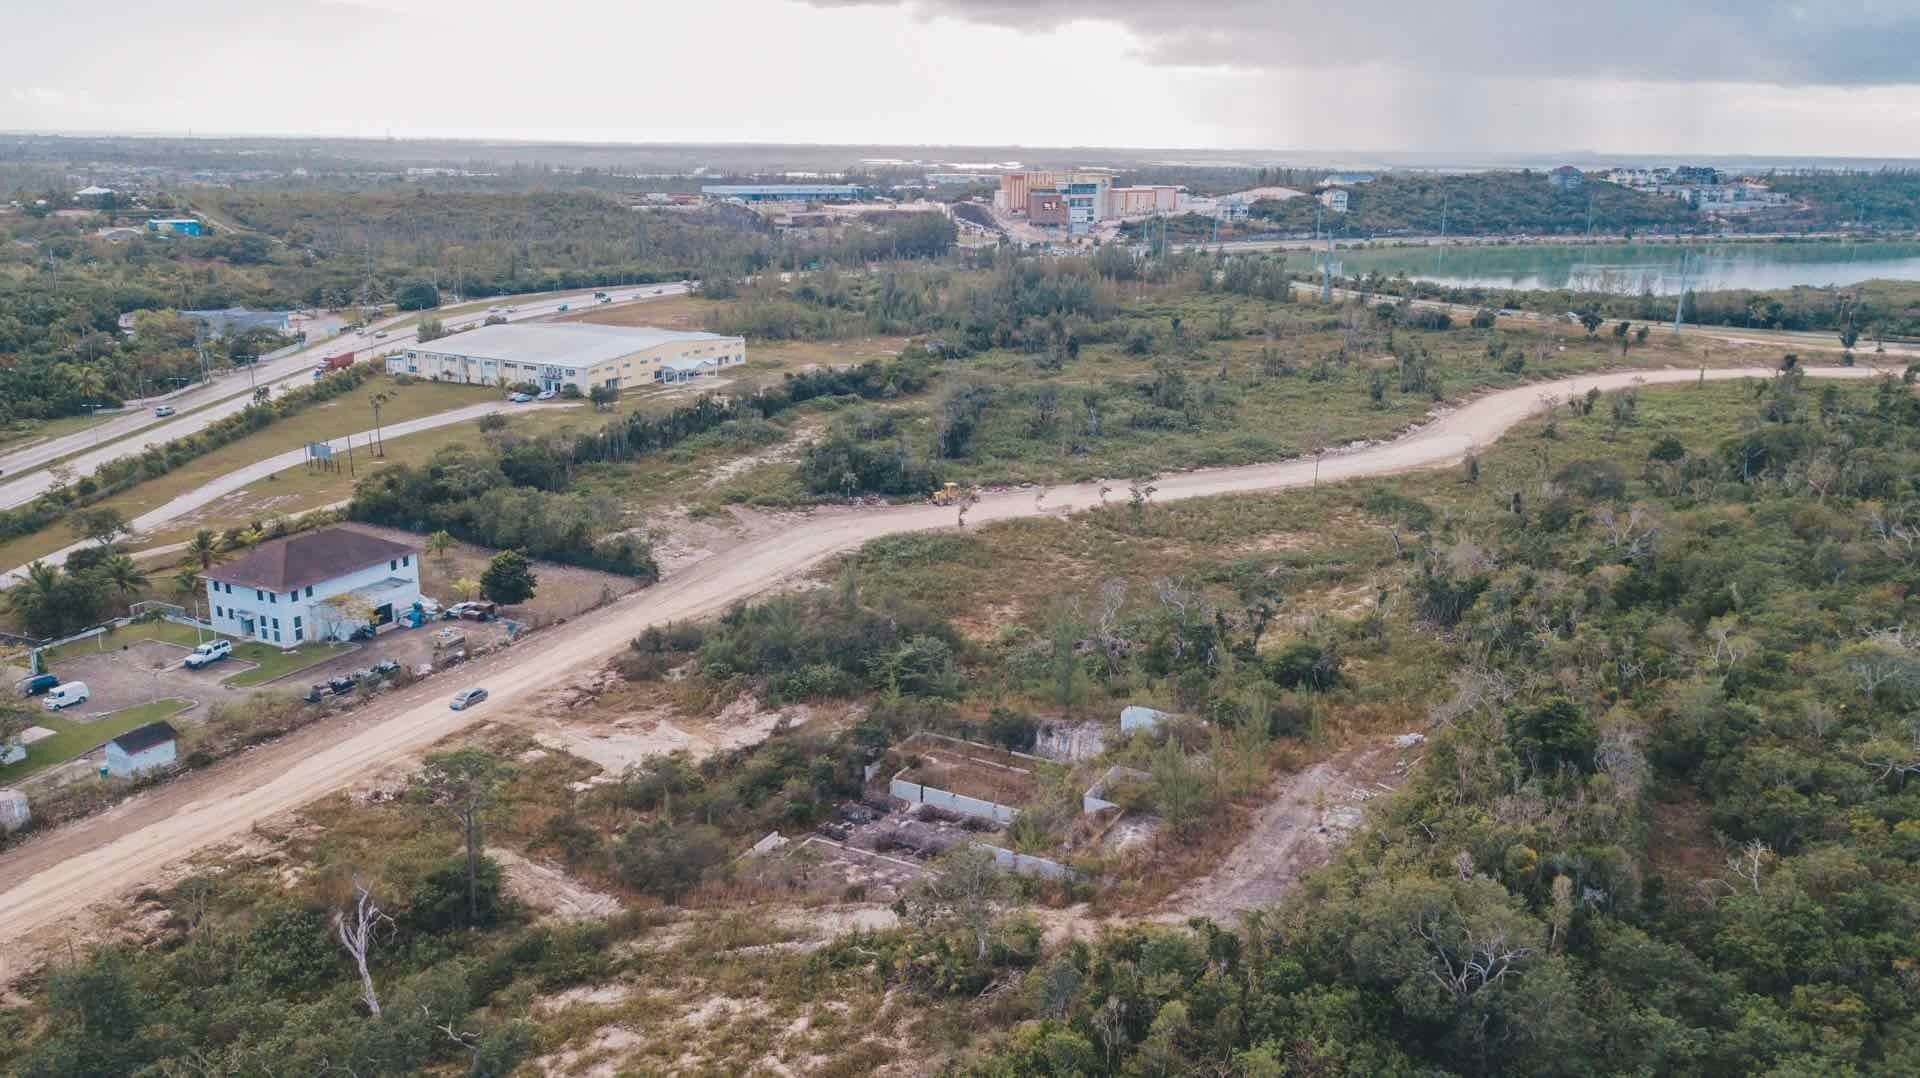 4. Commercial for Sale at Commercial Property off Baha Mar Boulevard - MLS 40957 Bahamar, Nassau And Paradise Island, Bahamas